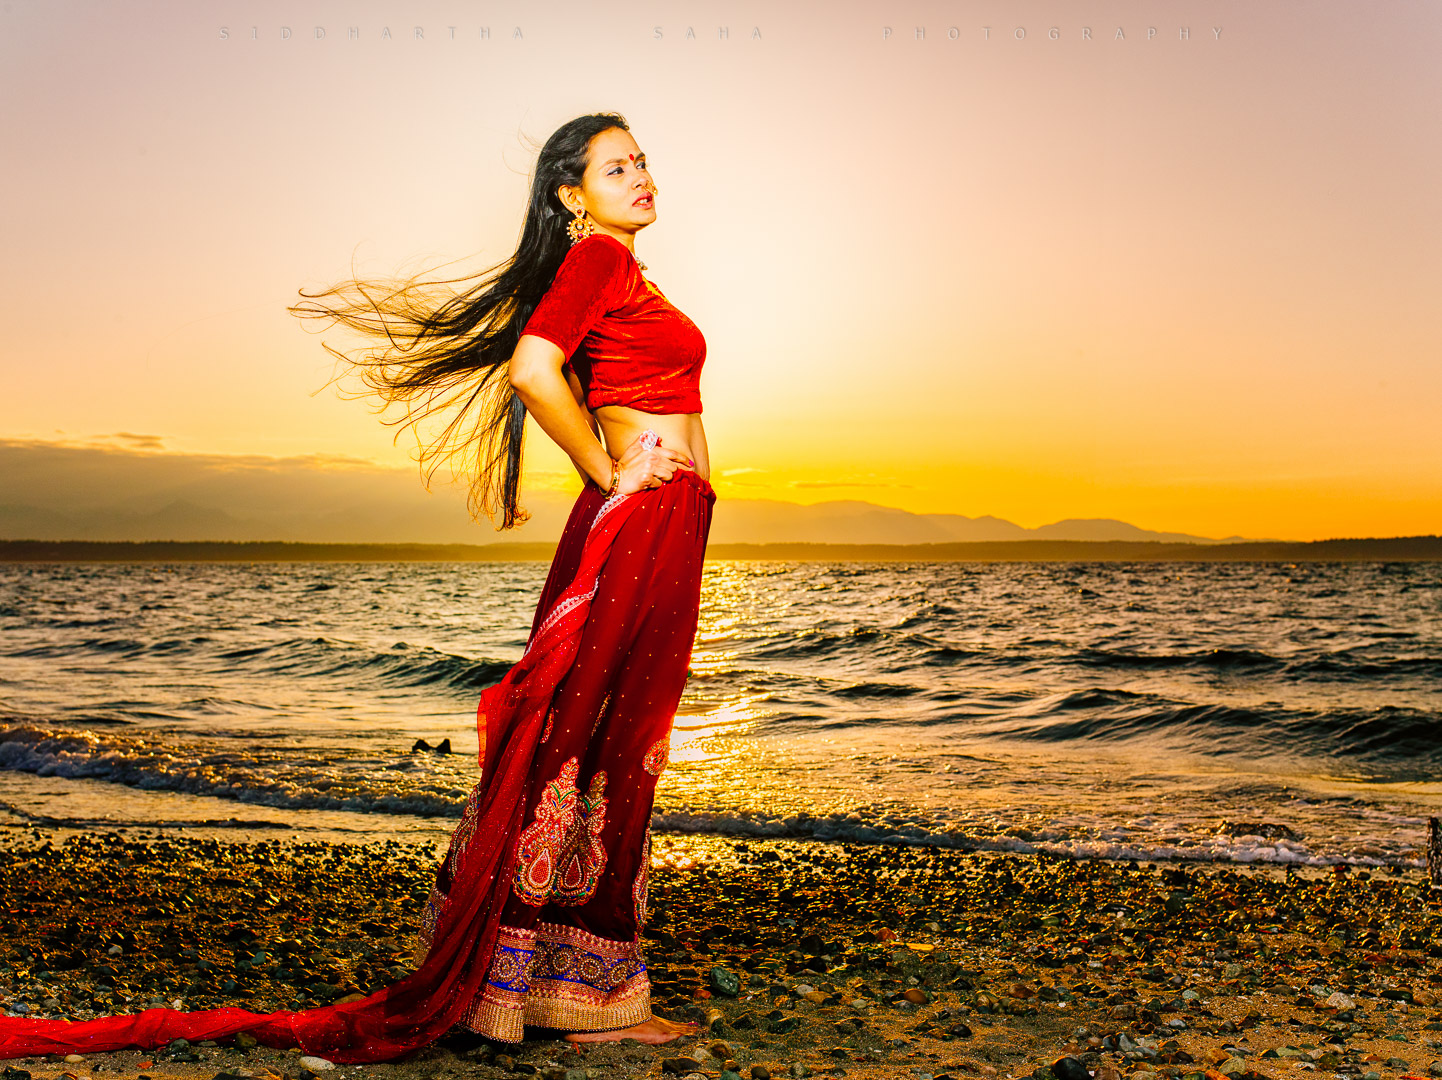 2015-05-02 - Piyali Shoot at Golden Gardens - Credo - CF002528-01